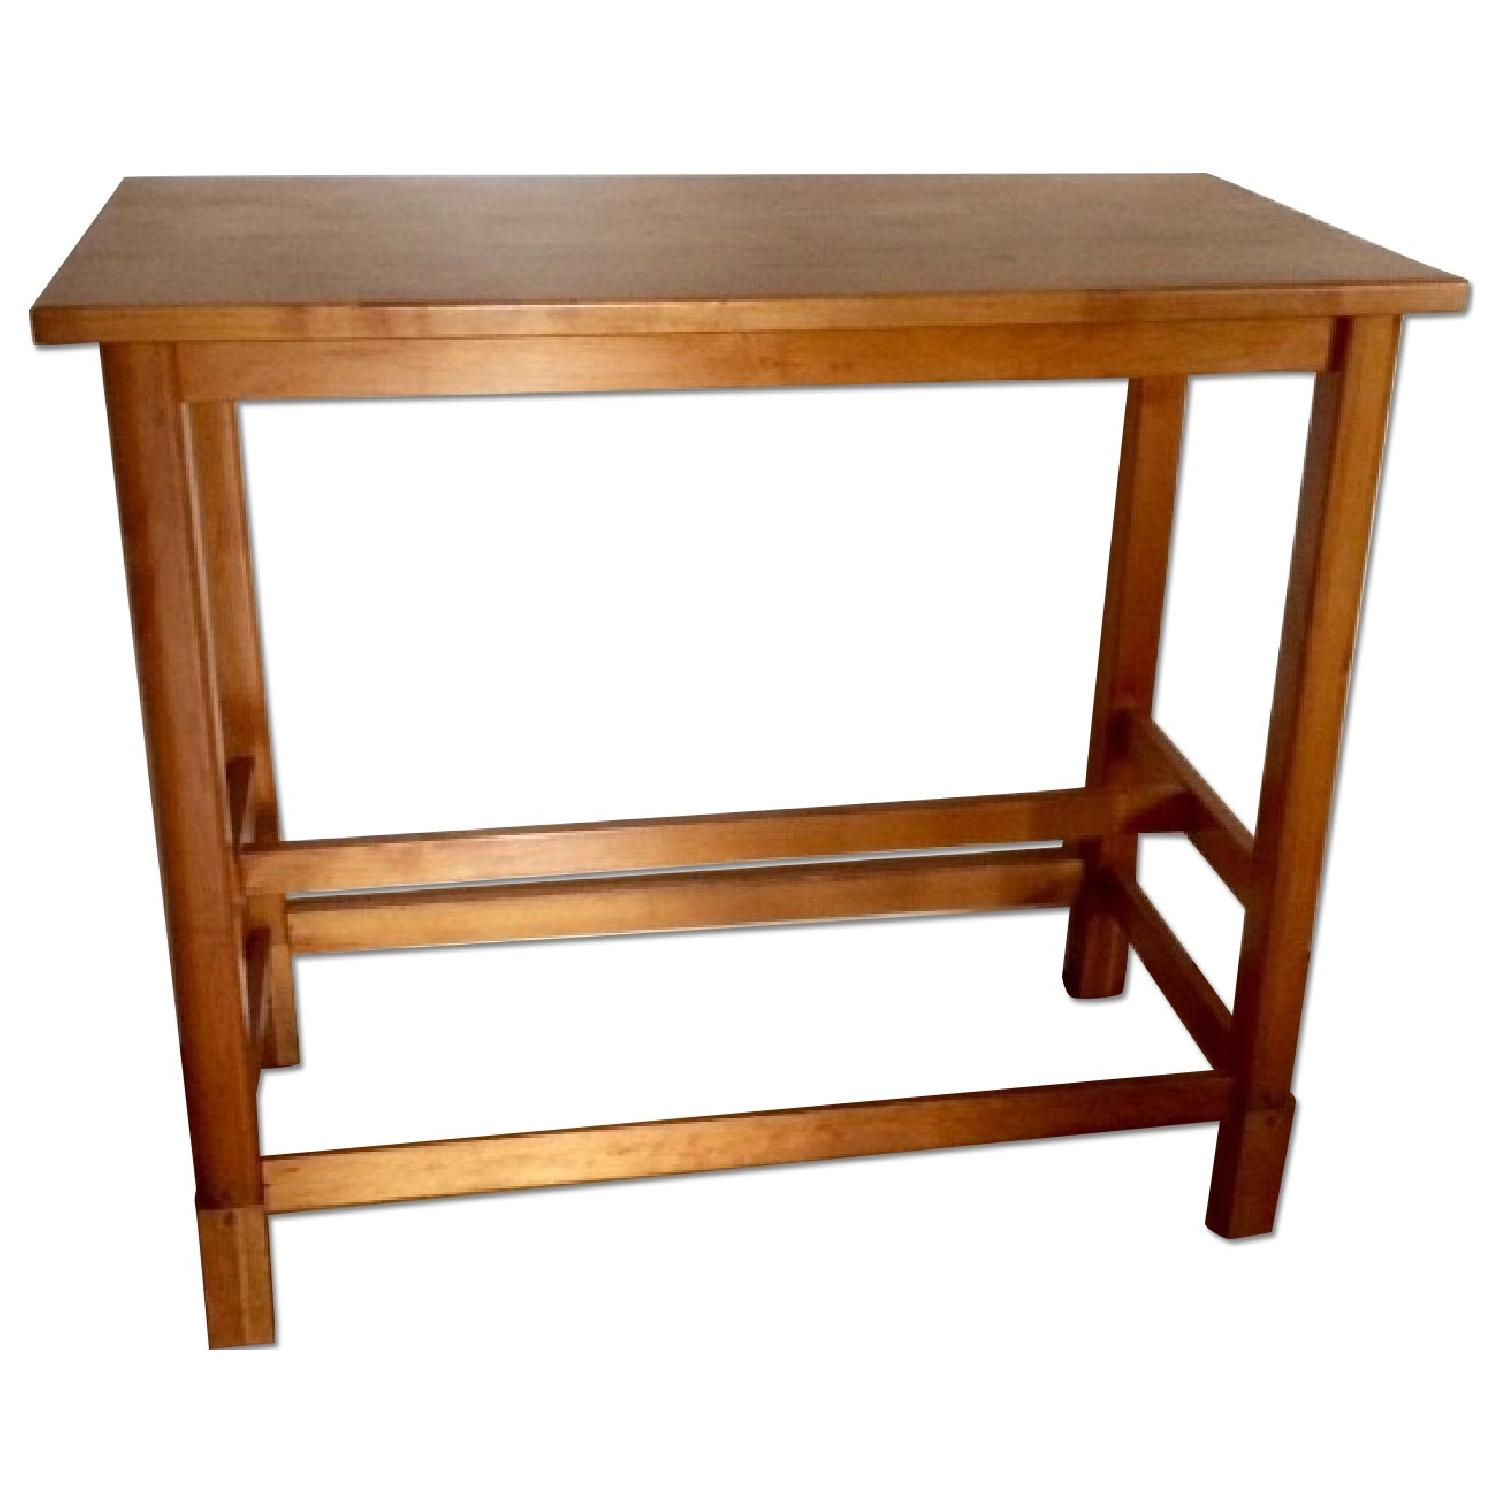 Gothic Cabinet Craft Bar Height Table - image-0